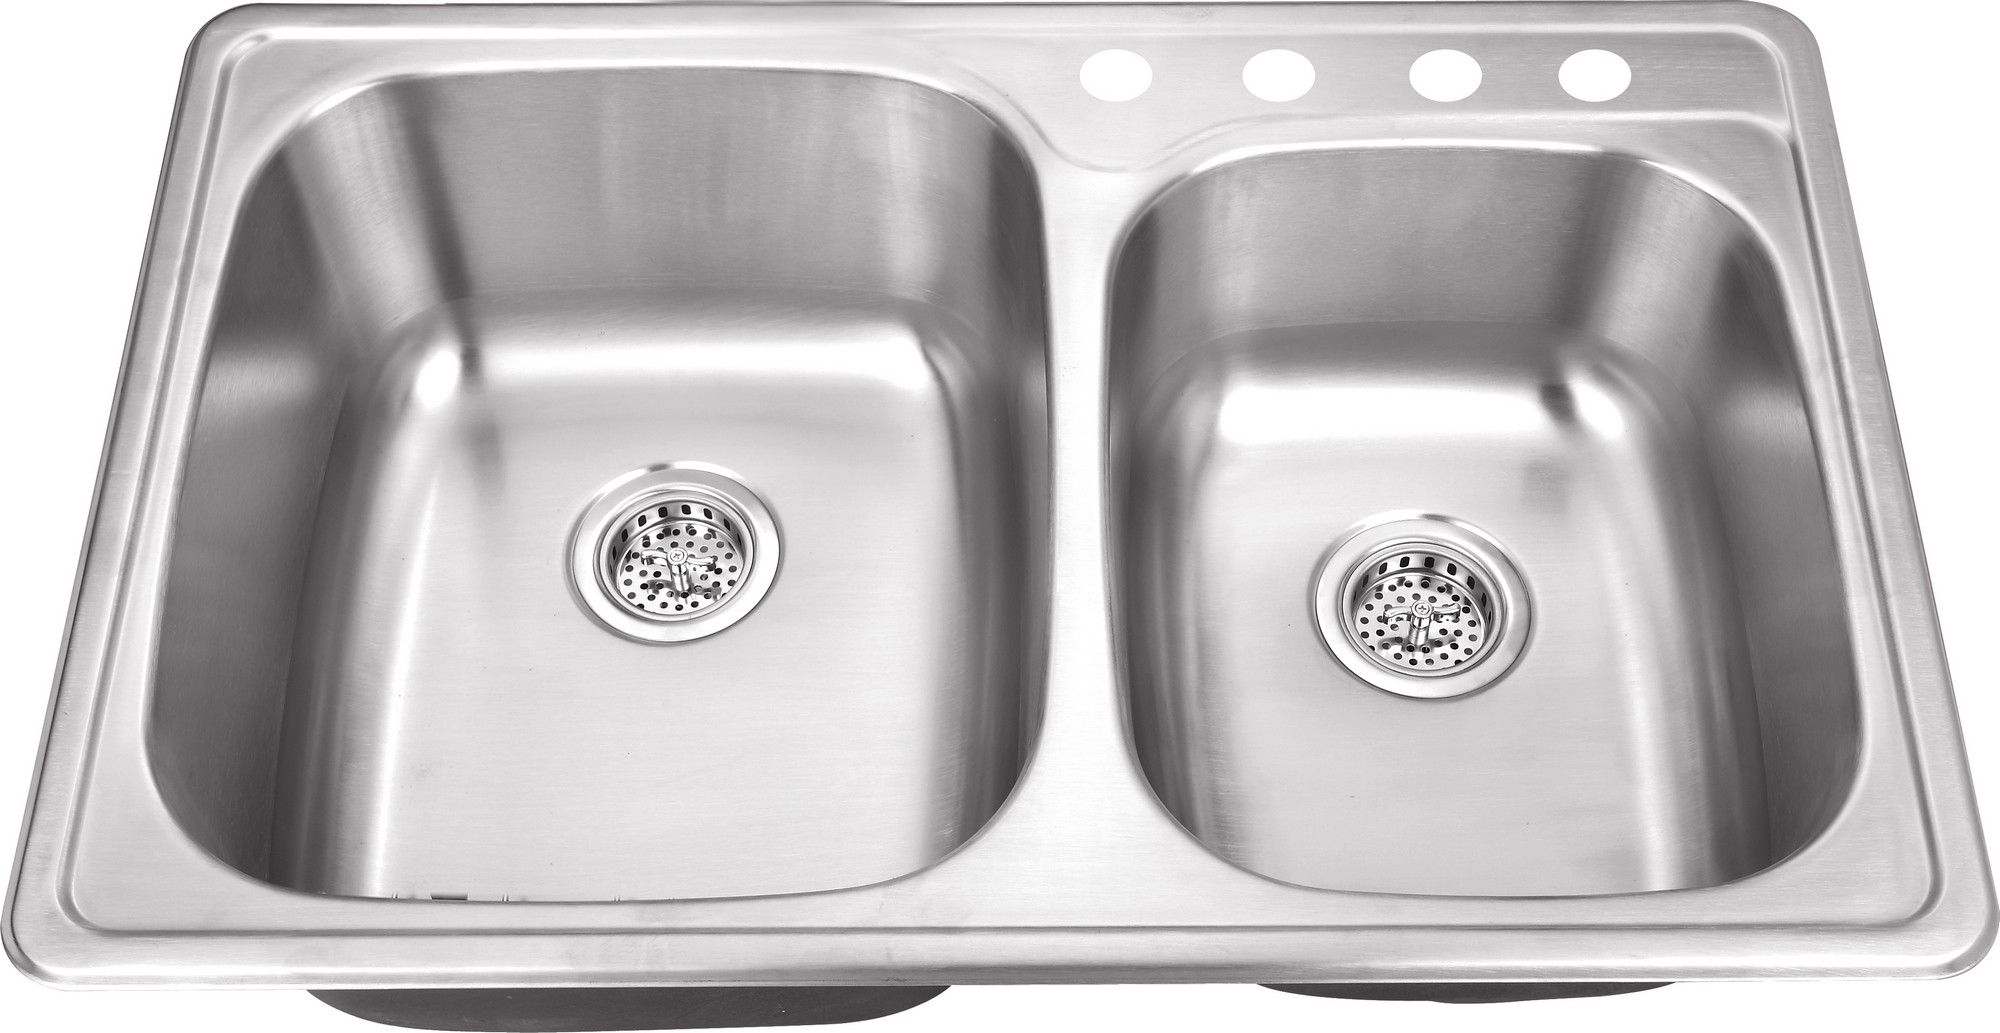 Cahaba CA113233 33-1/8 x 22 20 Gauge Stainless Steel Double Bowl Kitchen Sink